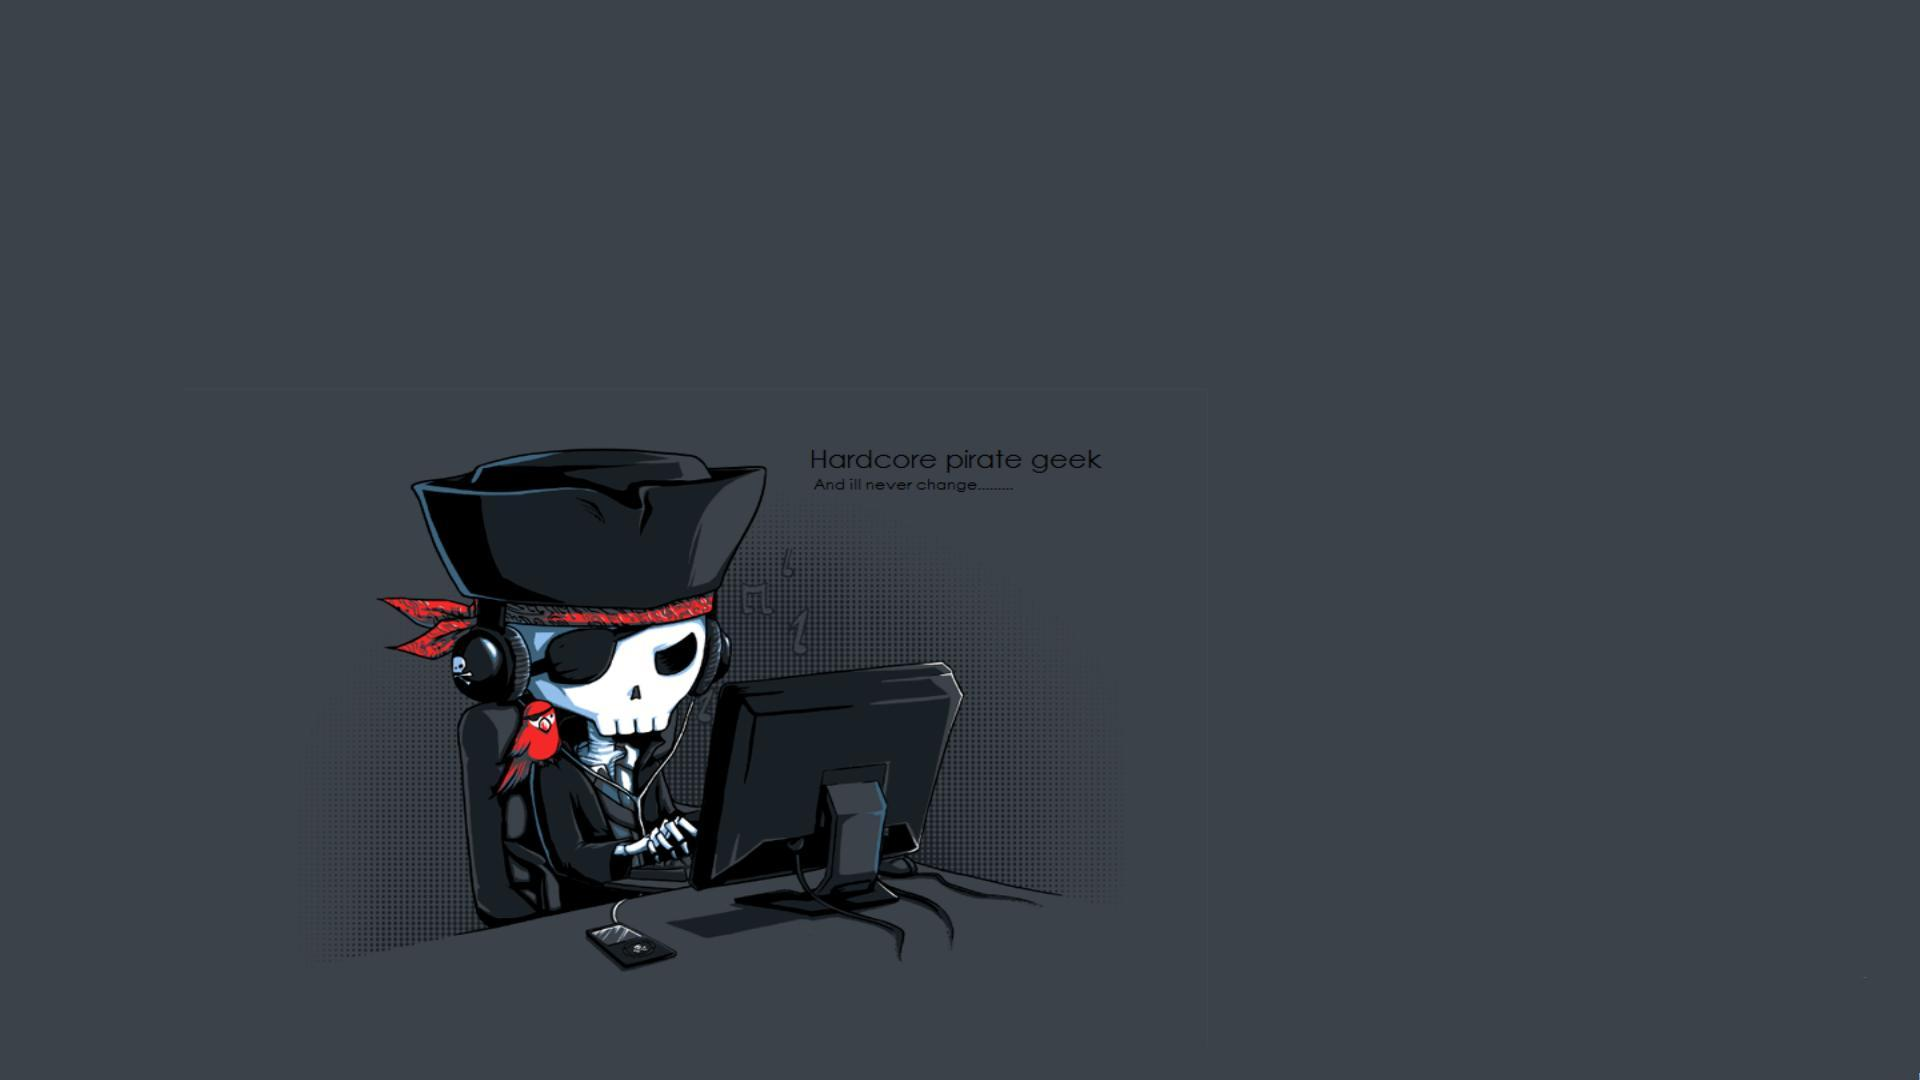 Pirate geek 1920x1080